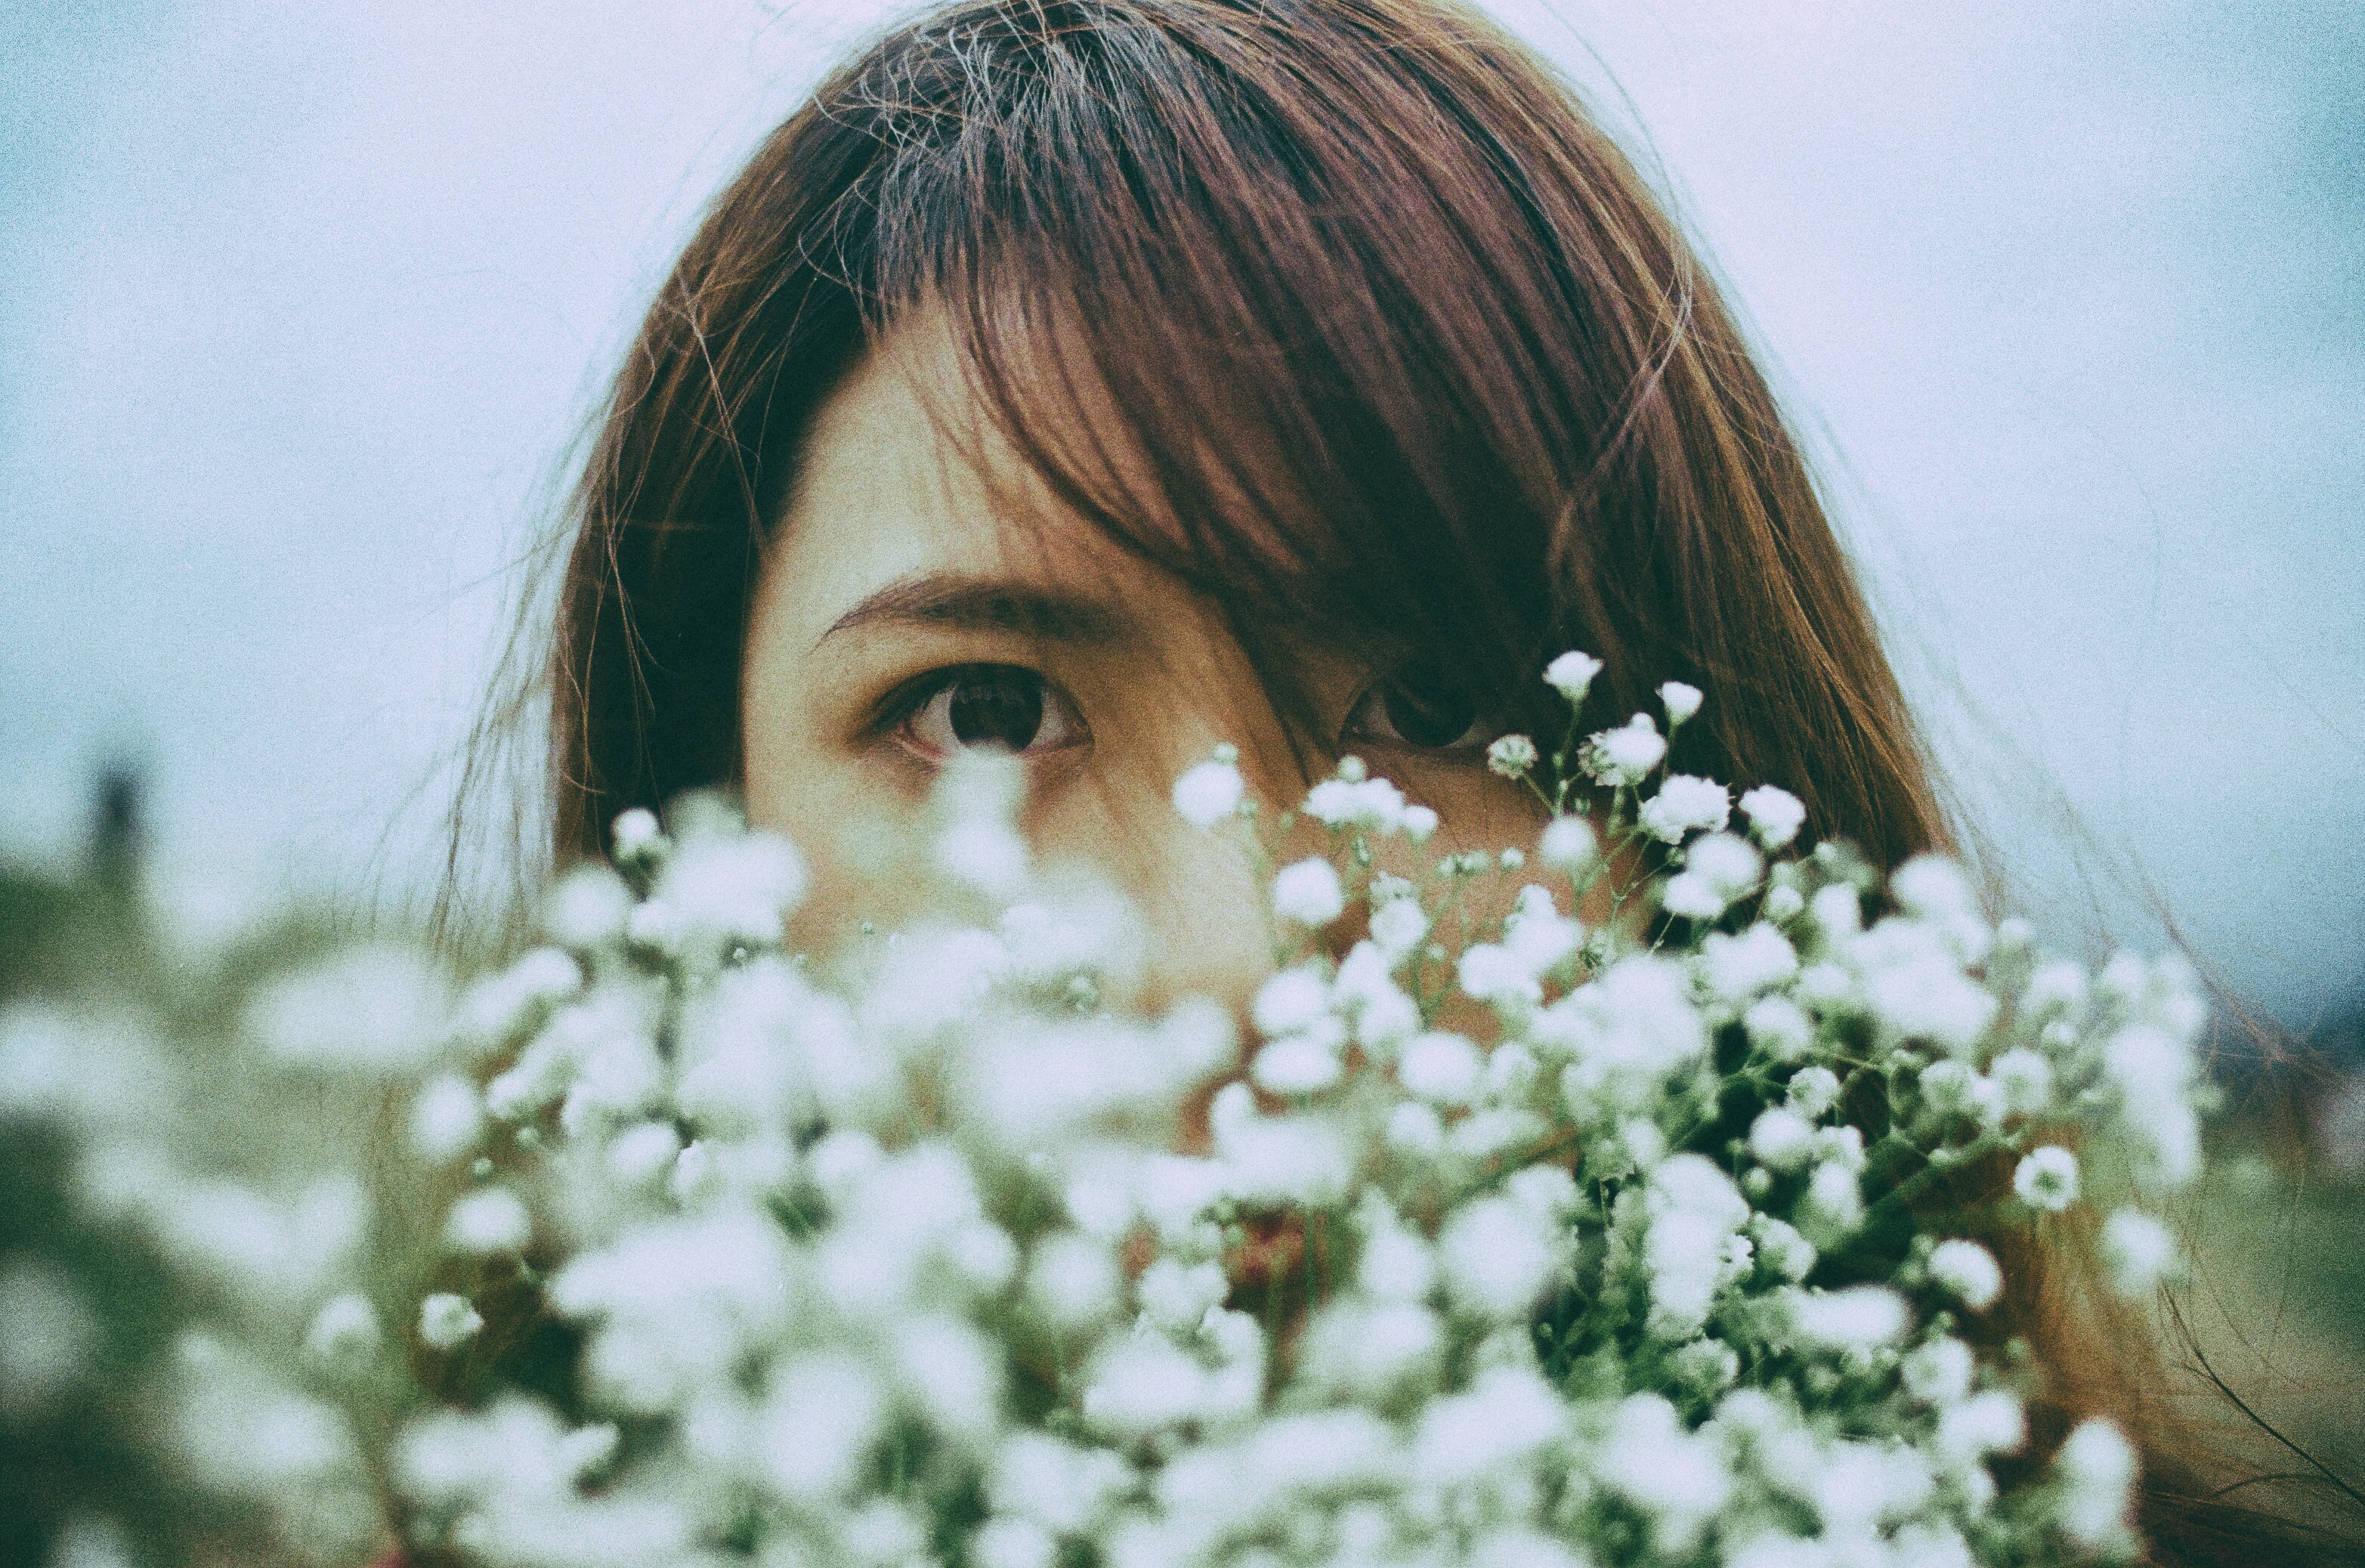 A dark-haired woman's face behind a bunch of tiny white flowers